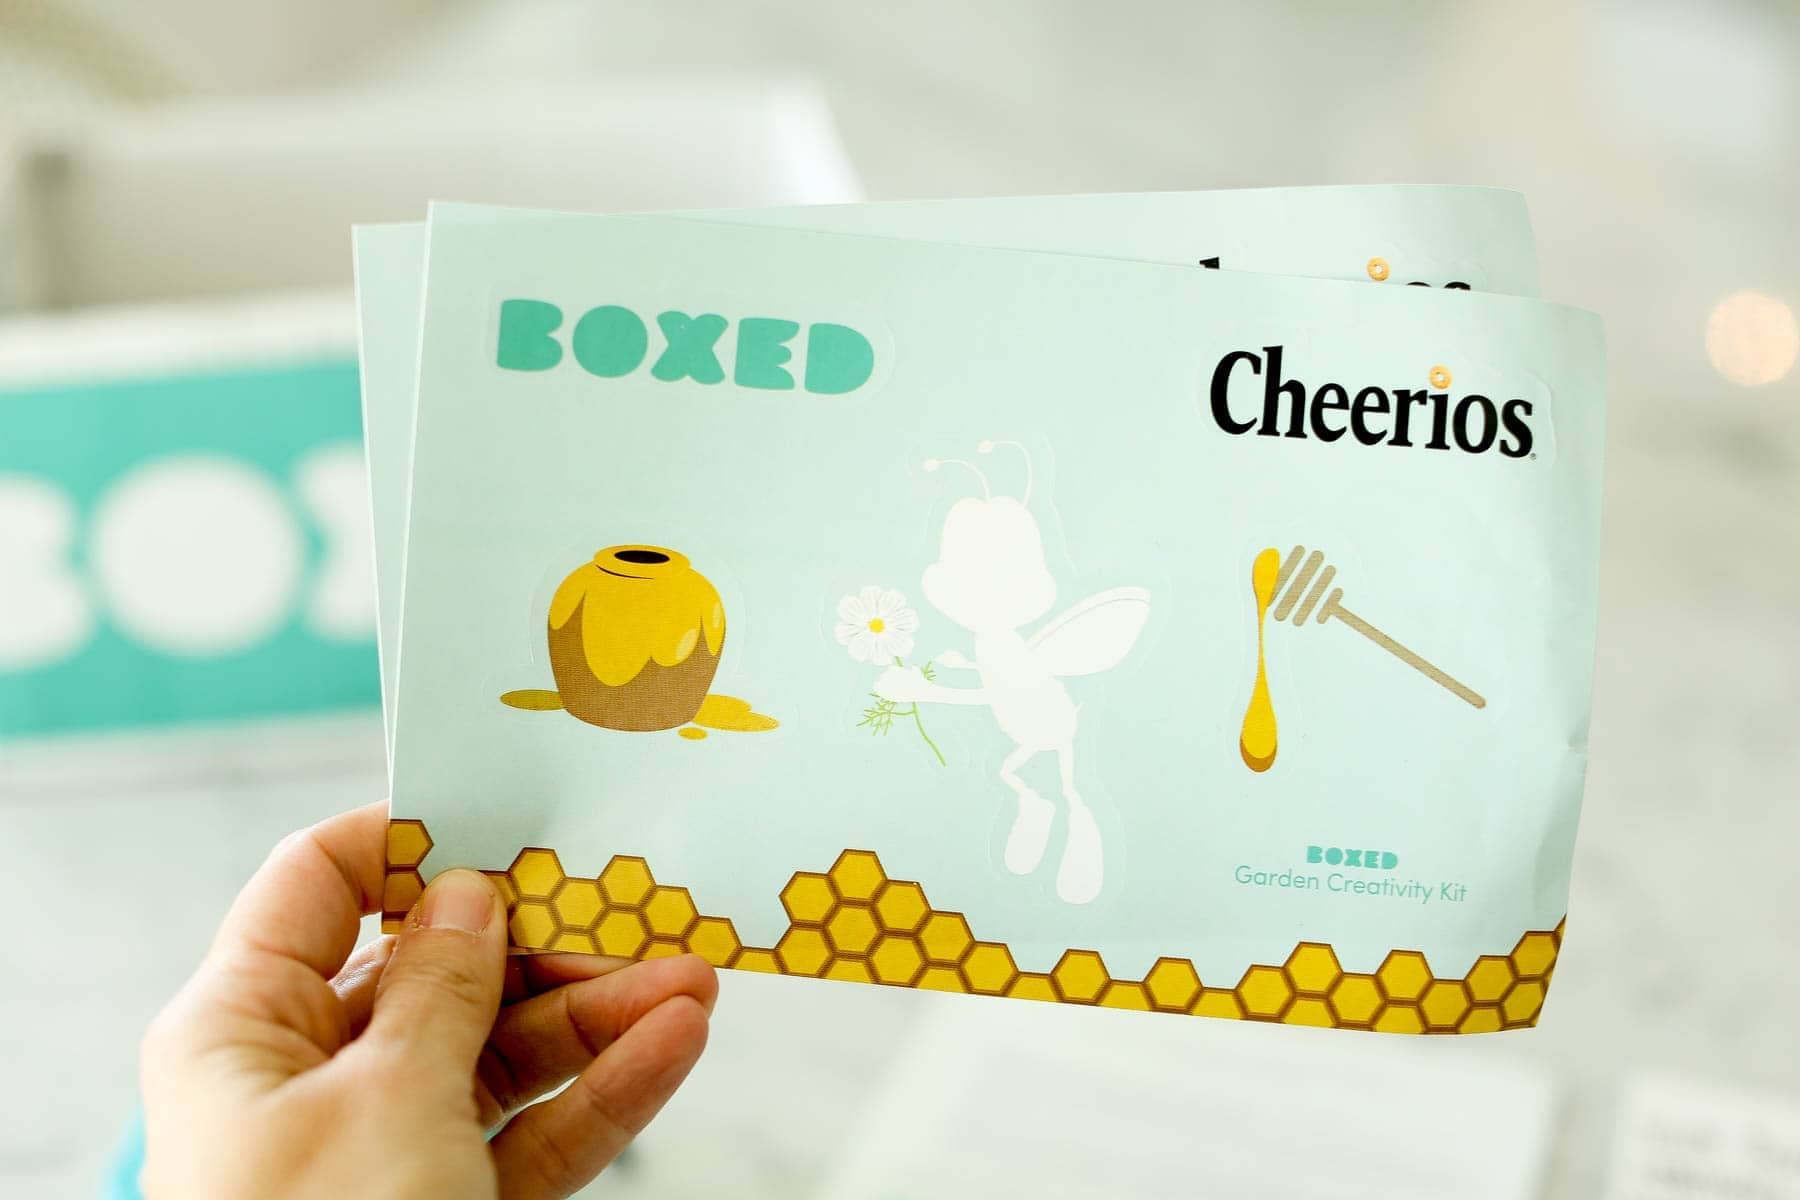 Free creativity kit to decorate your mini garden box from Boxed and General Mills' Bring Back the Bees campaign